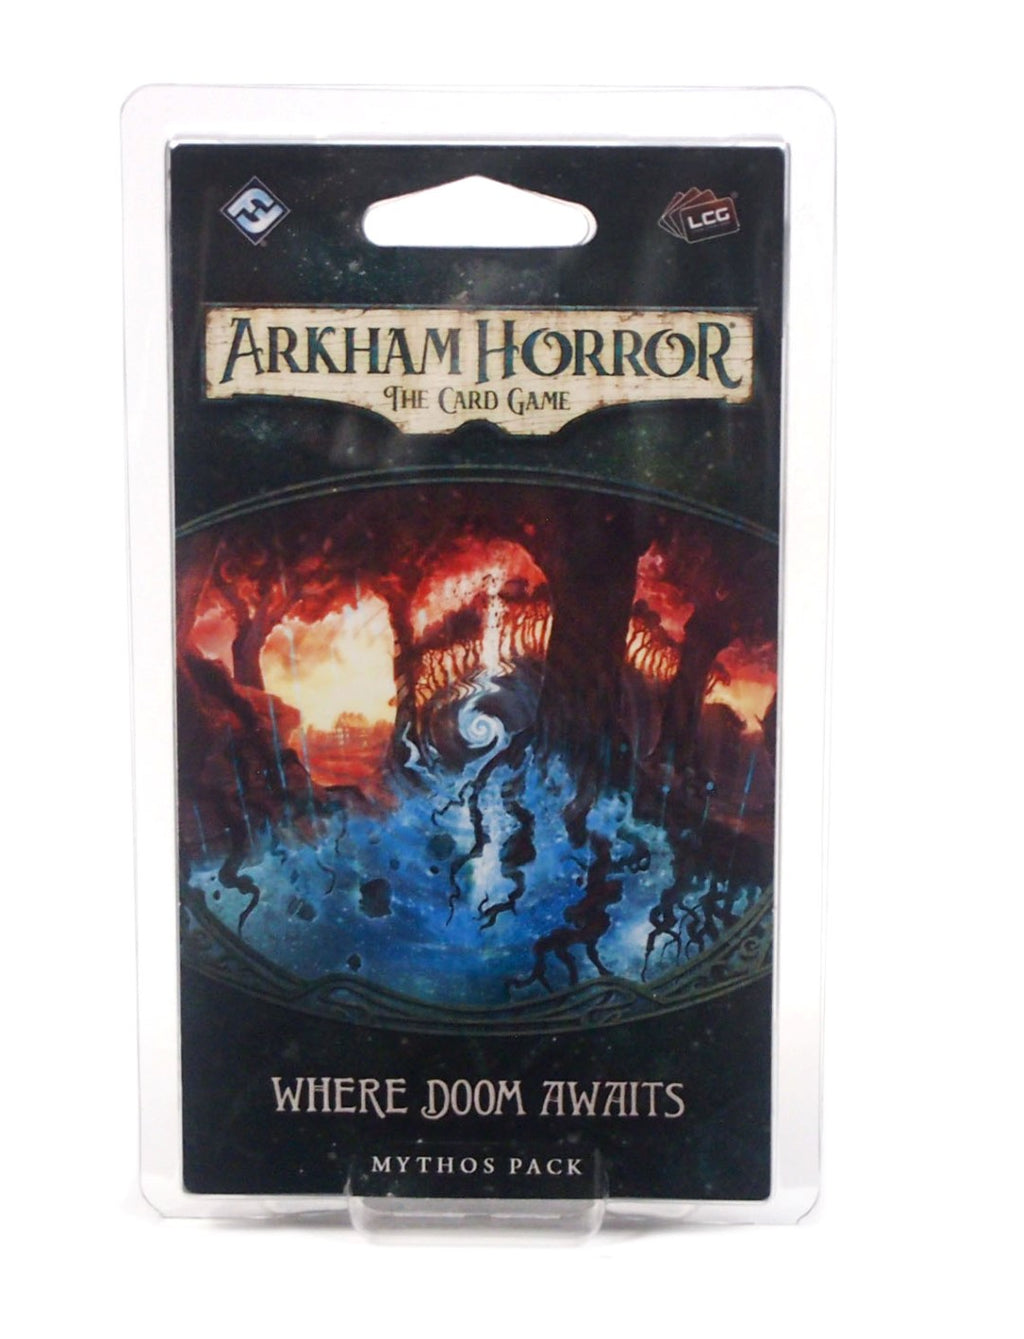 Arkham Horror LCG Where Doom Awaits Mythos Pack